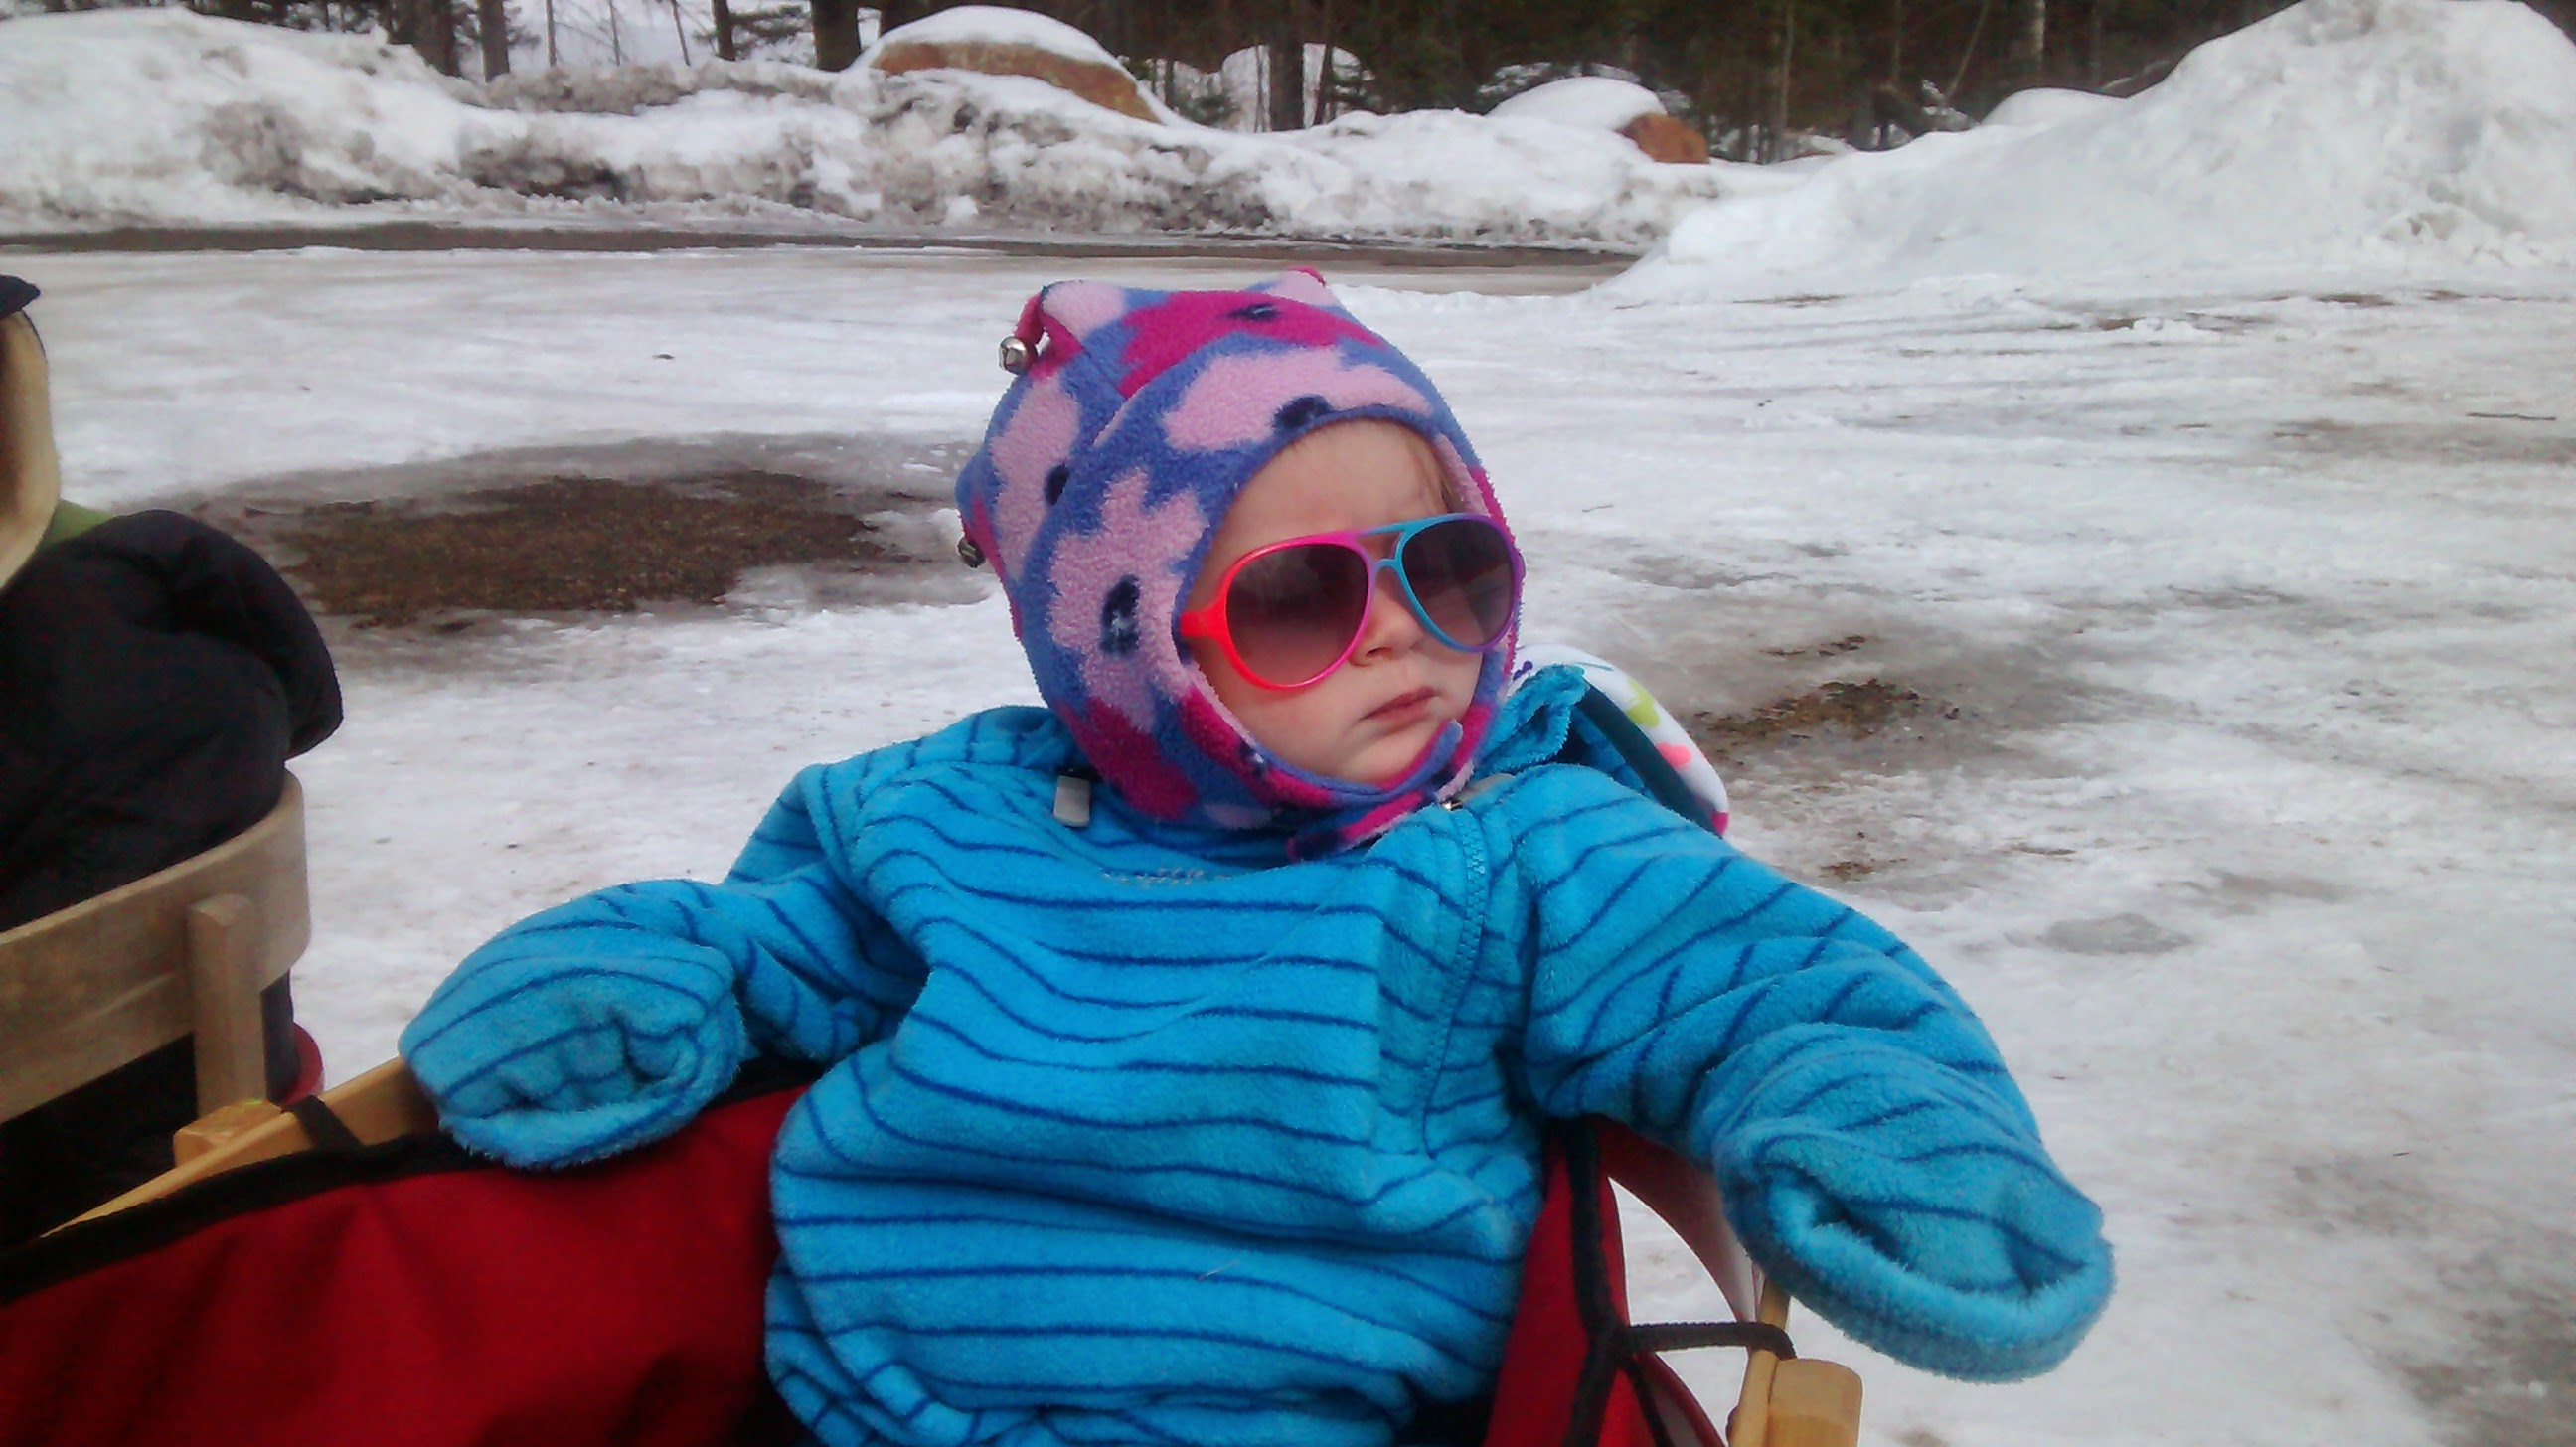 toddler in winter apparel with snow in the background and wearing sunglasses